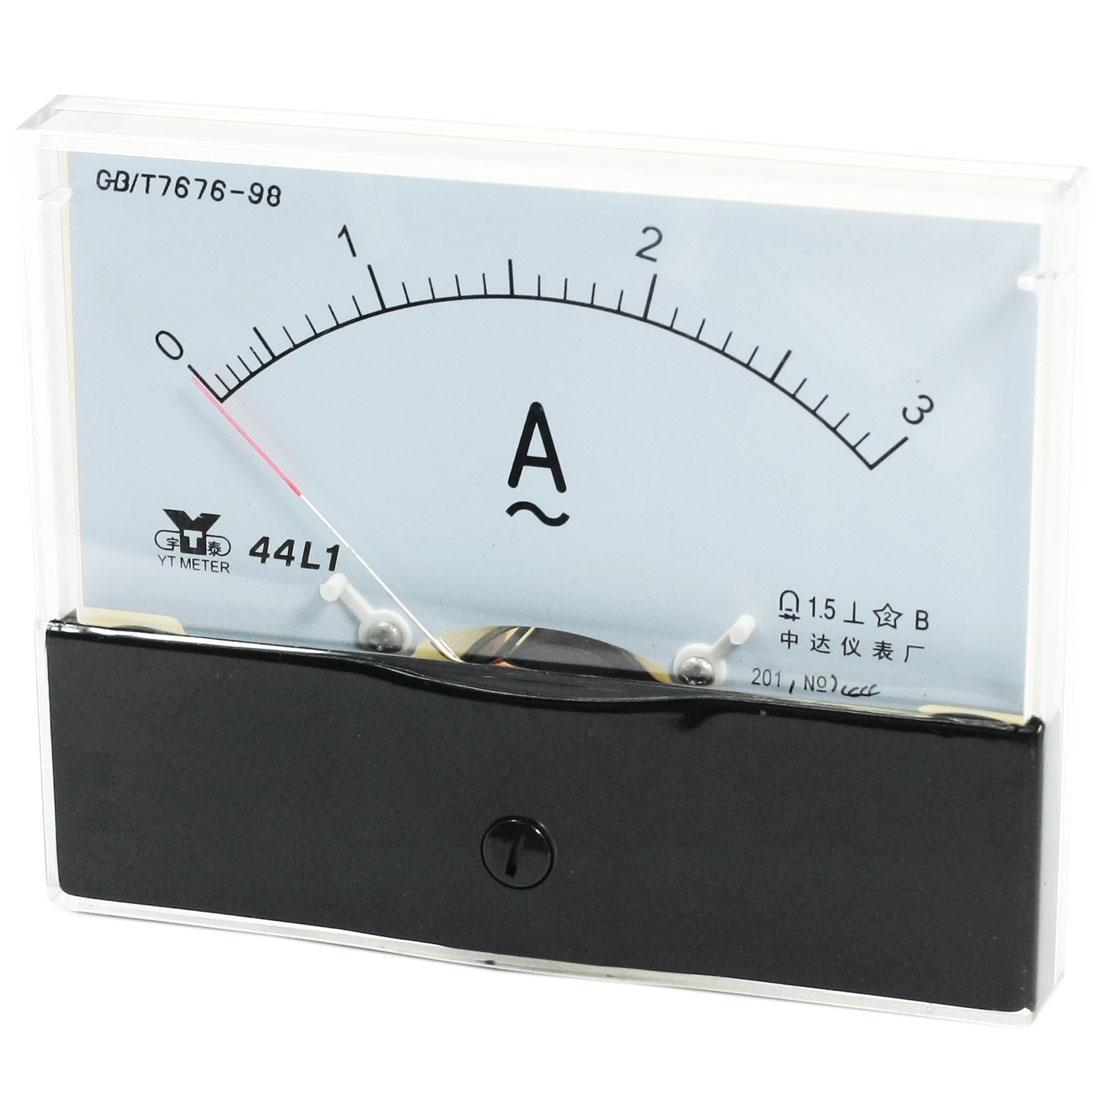 Measurement Tool Panel Mount Analog Ammeter Gauge AC 0 - 3A Measuring Range 44L1